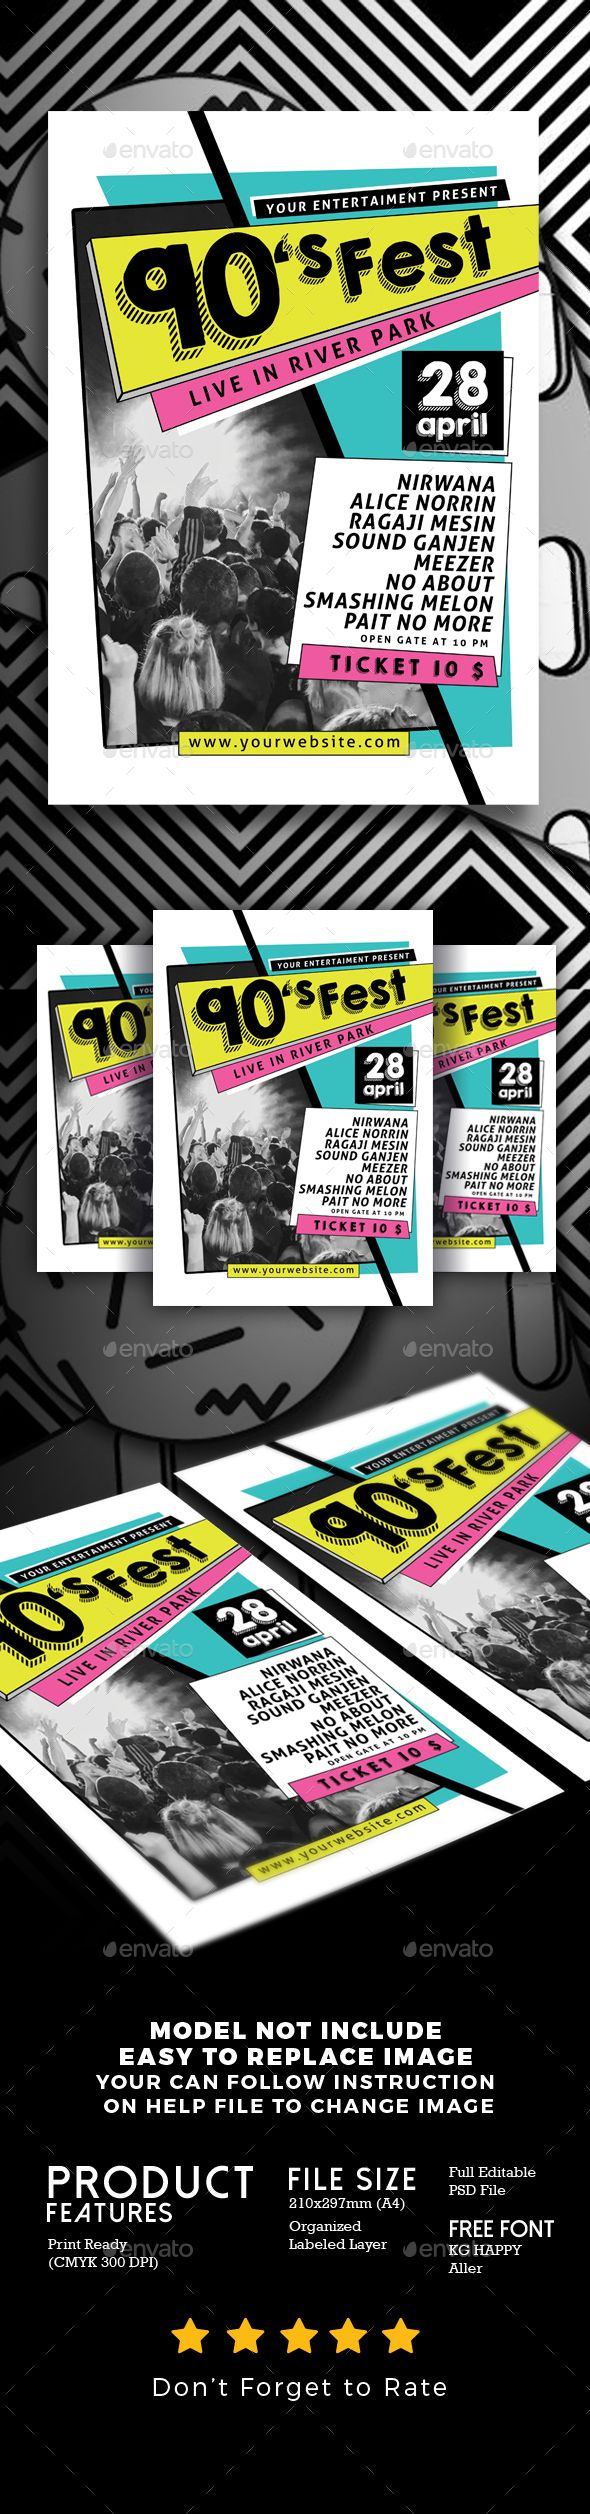 90's Music Festival - #Events #Flyers Download here: https://graphicriver.net/item/90s-music-festival/19756971?ref=alena994